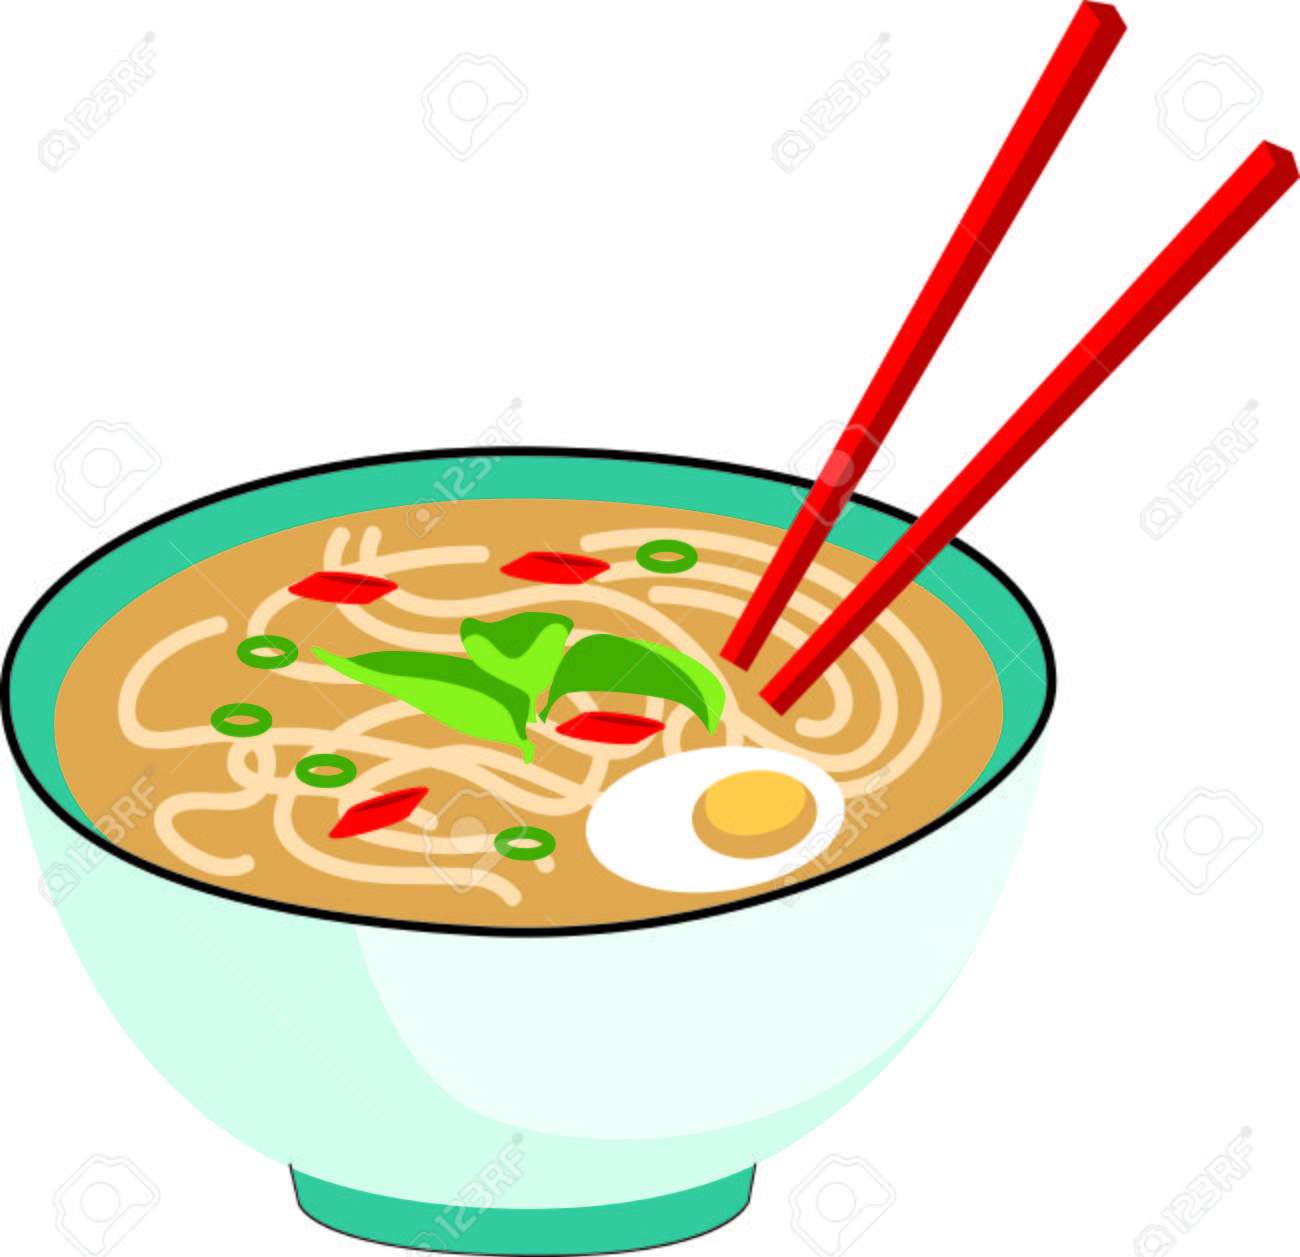 325 Chinese Food free clipart.